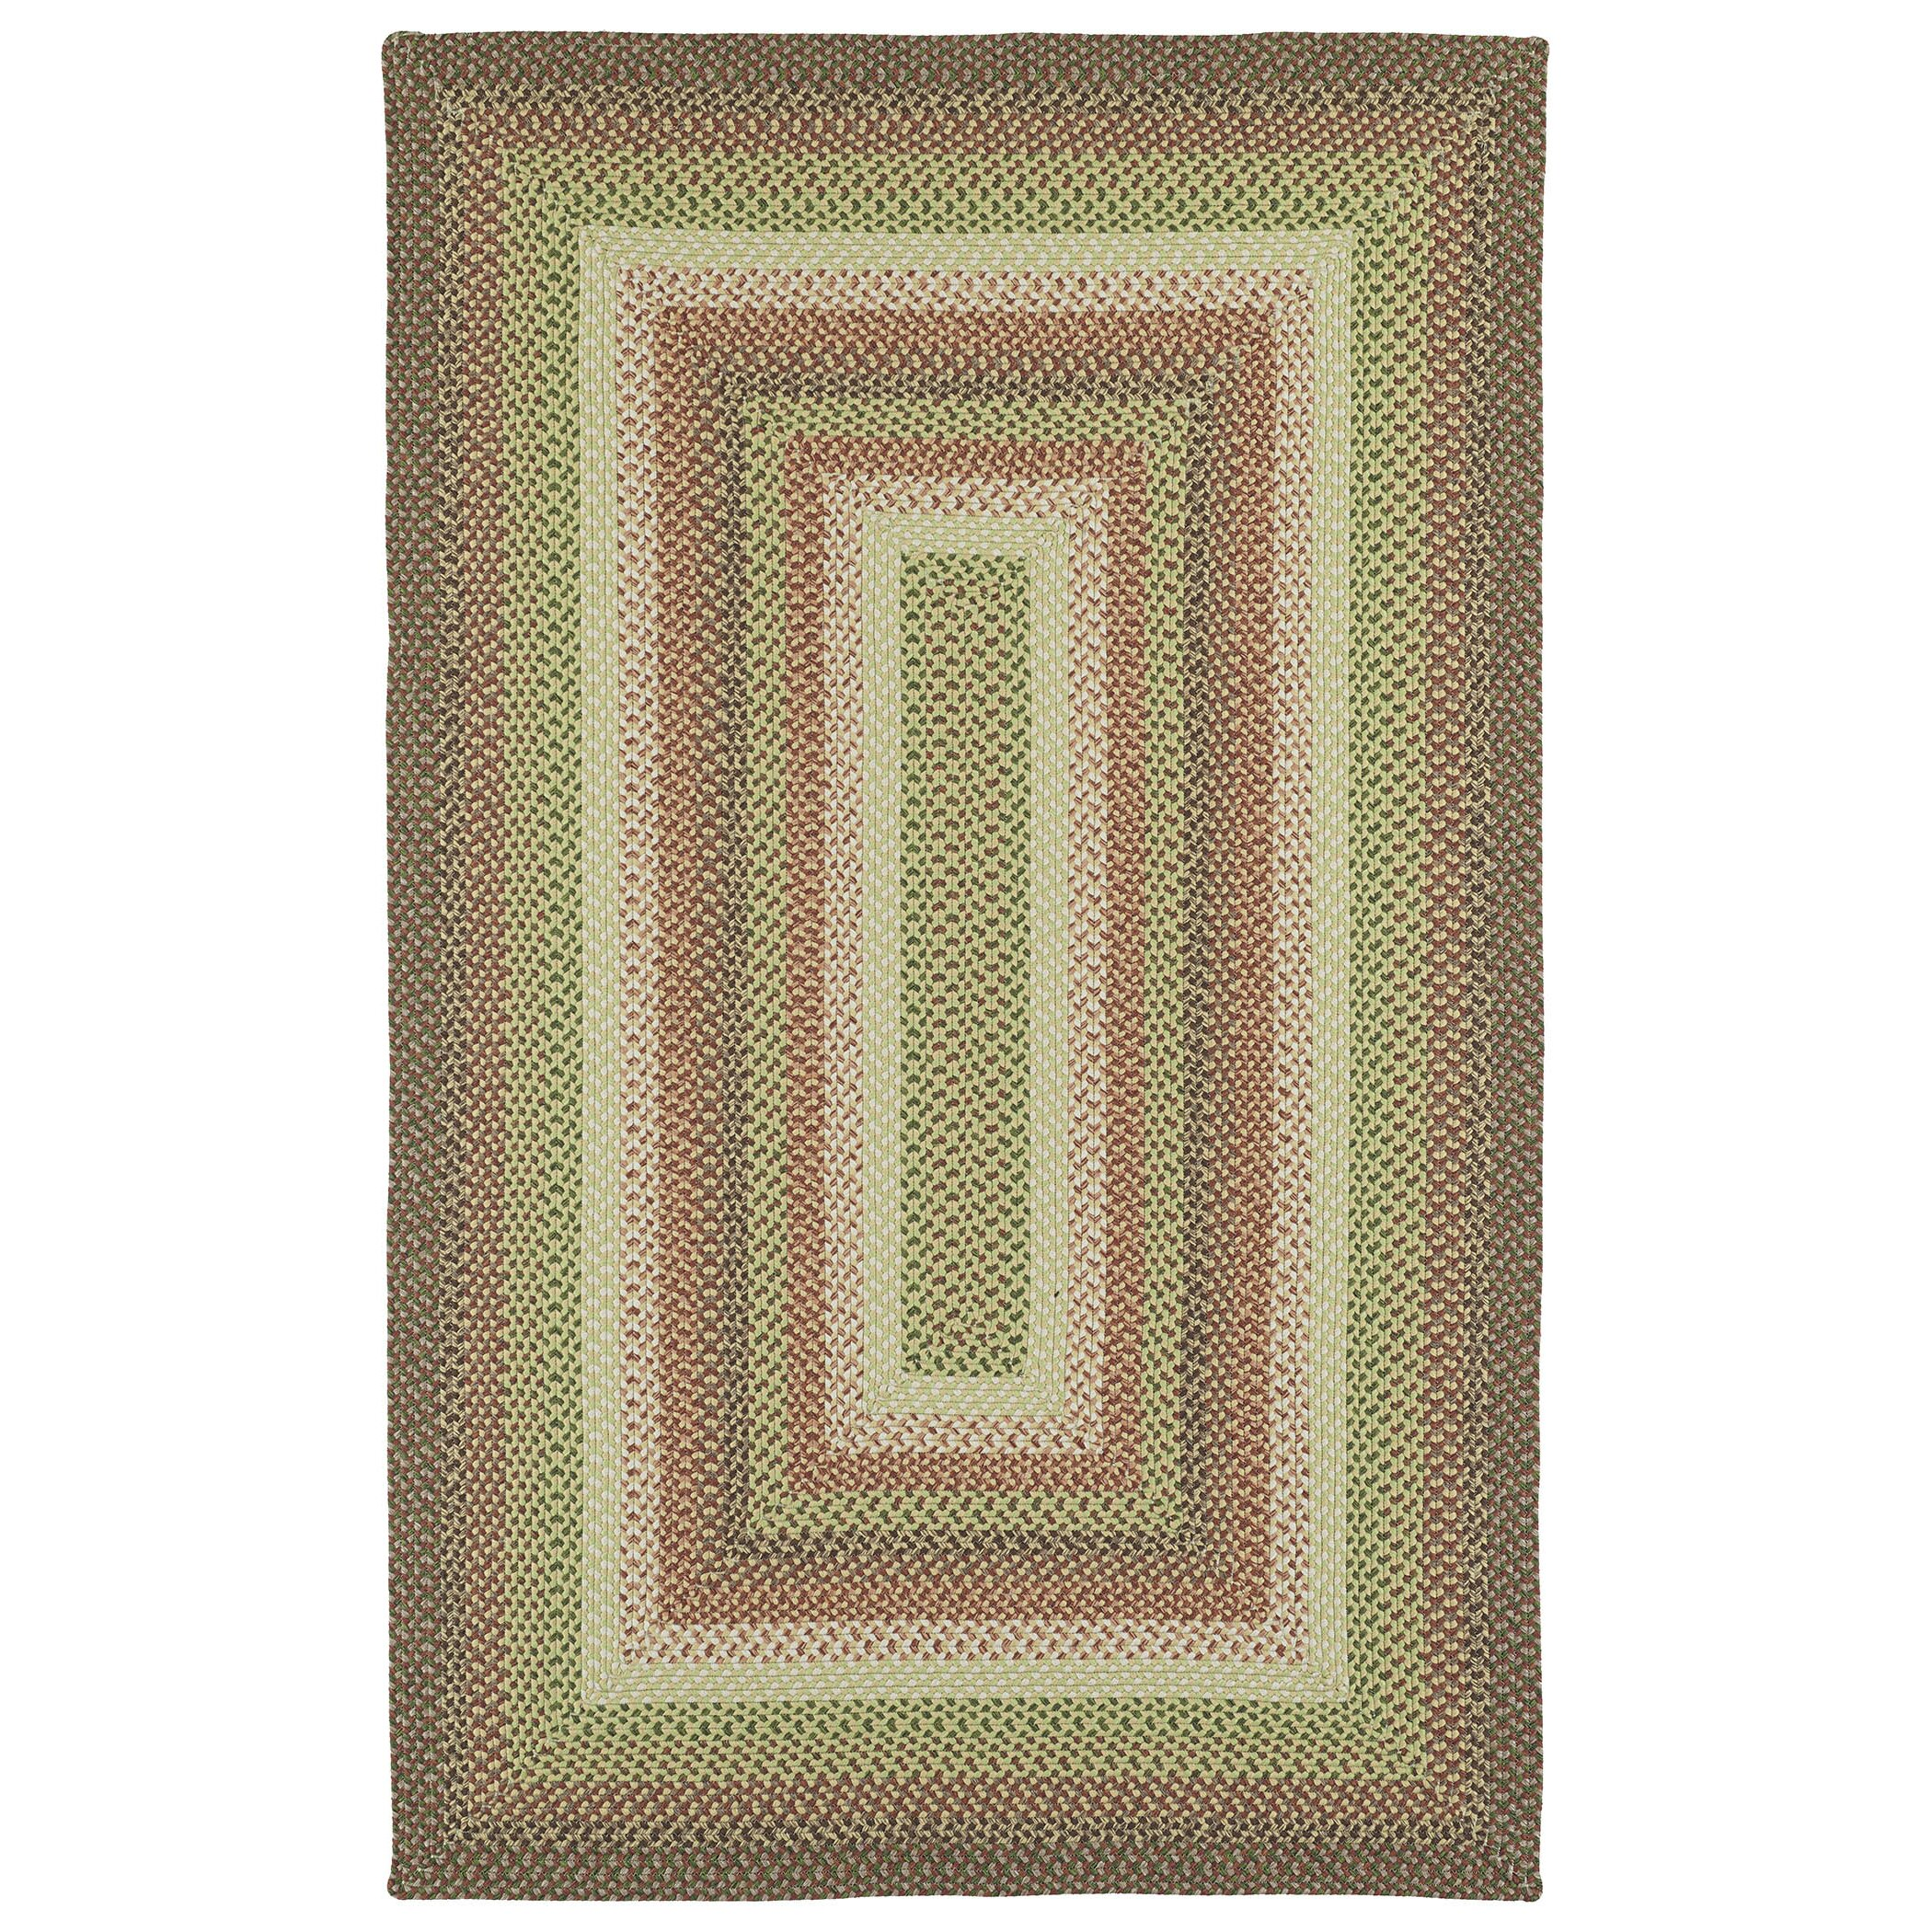 kaleen bimini indoor outdoor area rug reviews wayfair